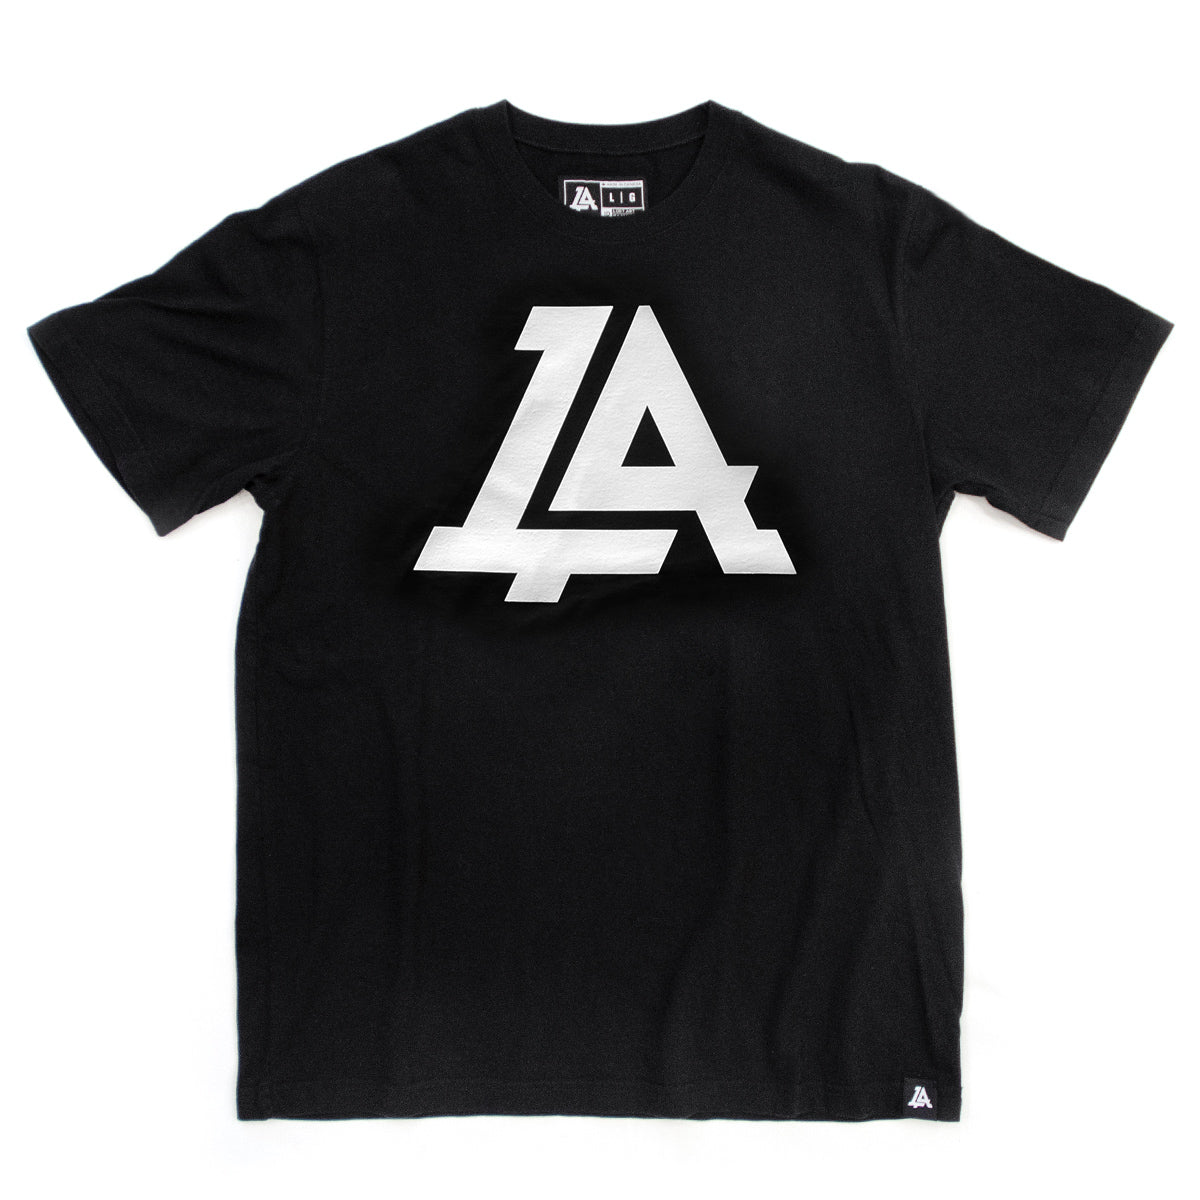 Lost Art Canada - white on black lost art icon logo tee front view